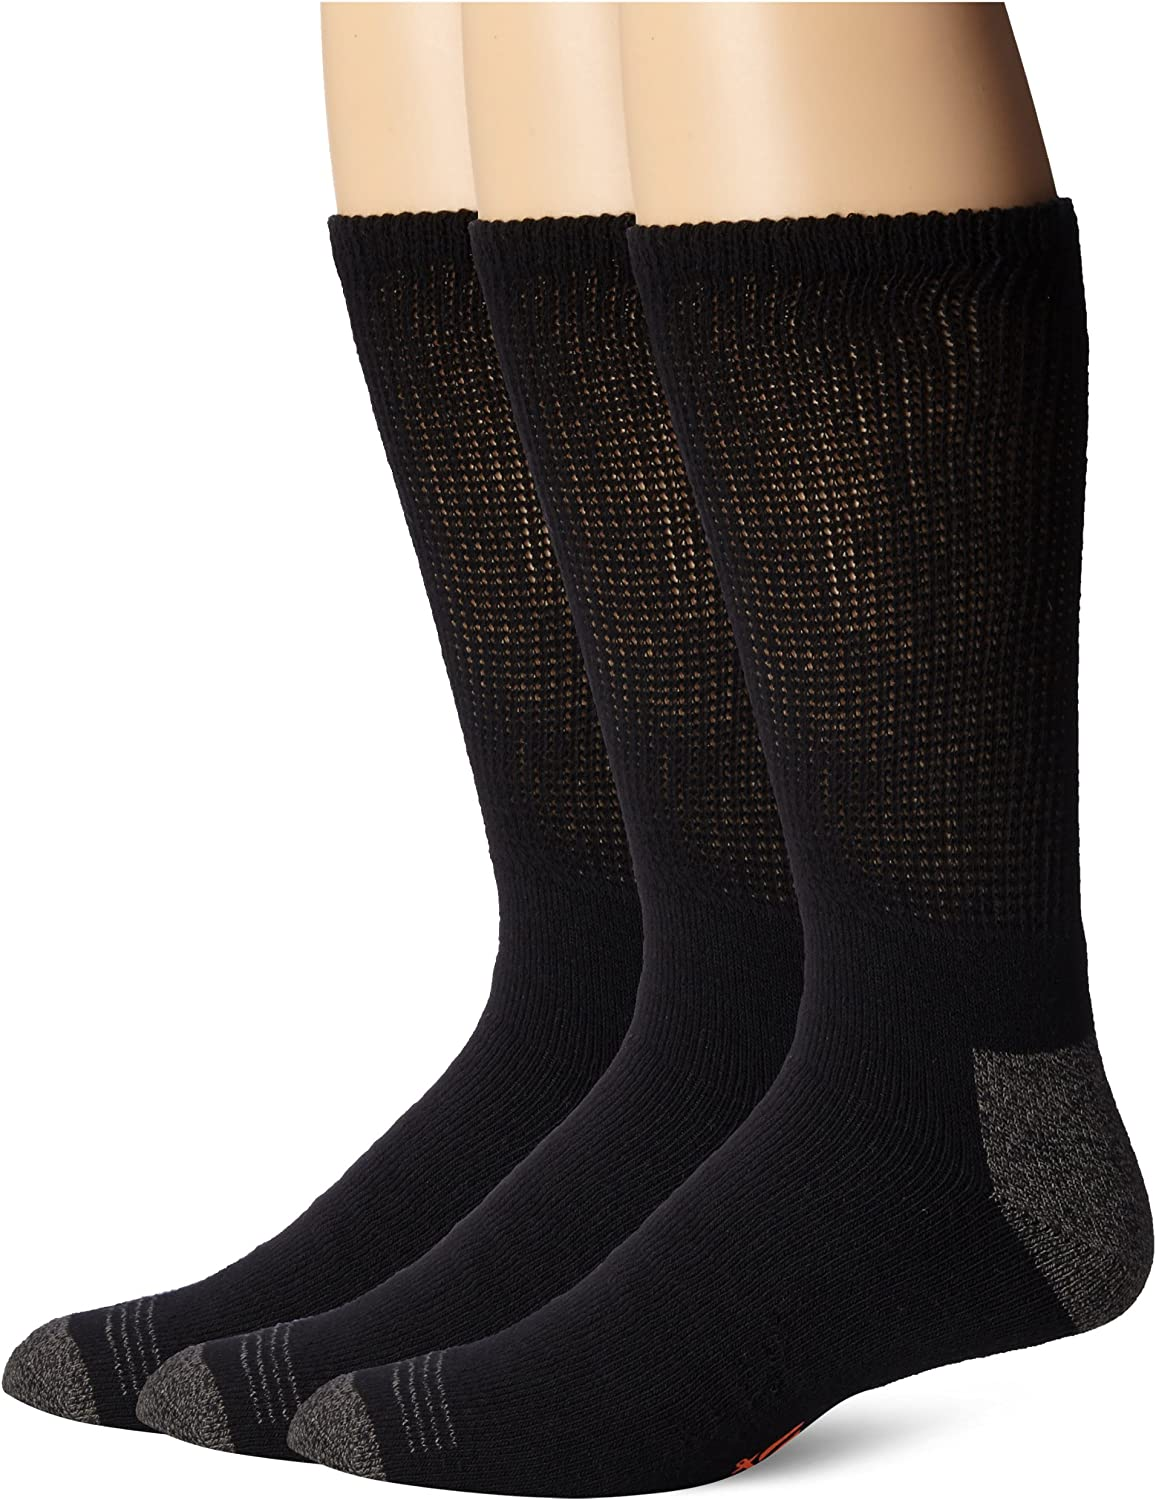 Dockers Men's 3 Pack Cushion Comfort Non Binding Basic Cotton Crew Socks - Big & Tall